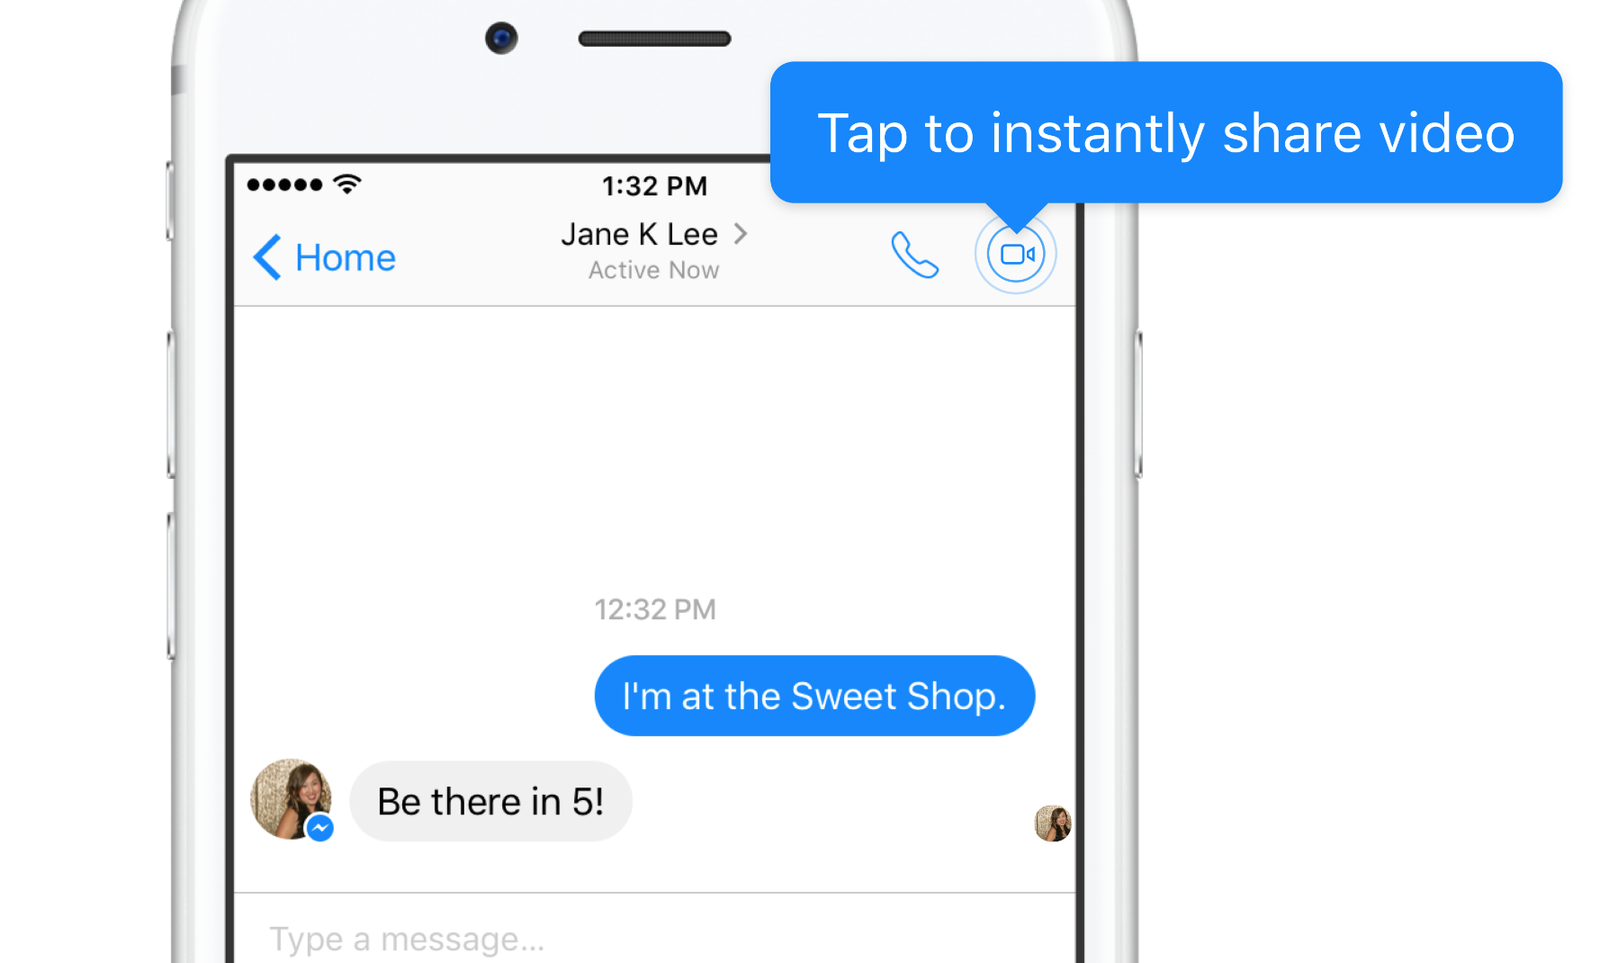 You Can Now Share Live Video Instantly Inside Facebook Messenger Conversations